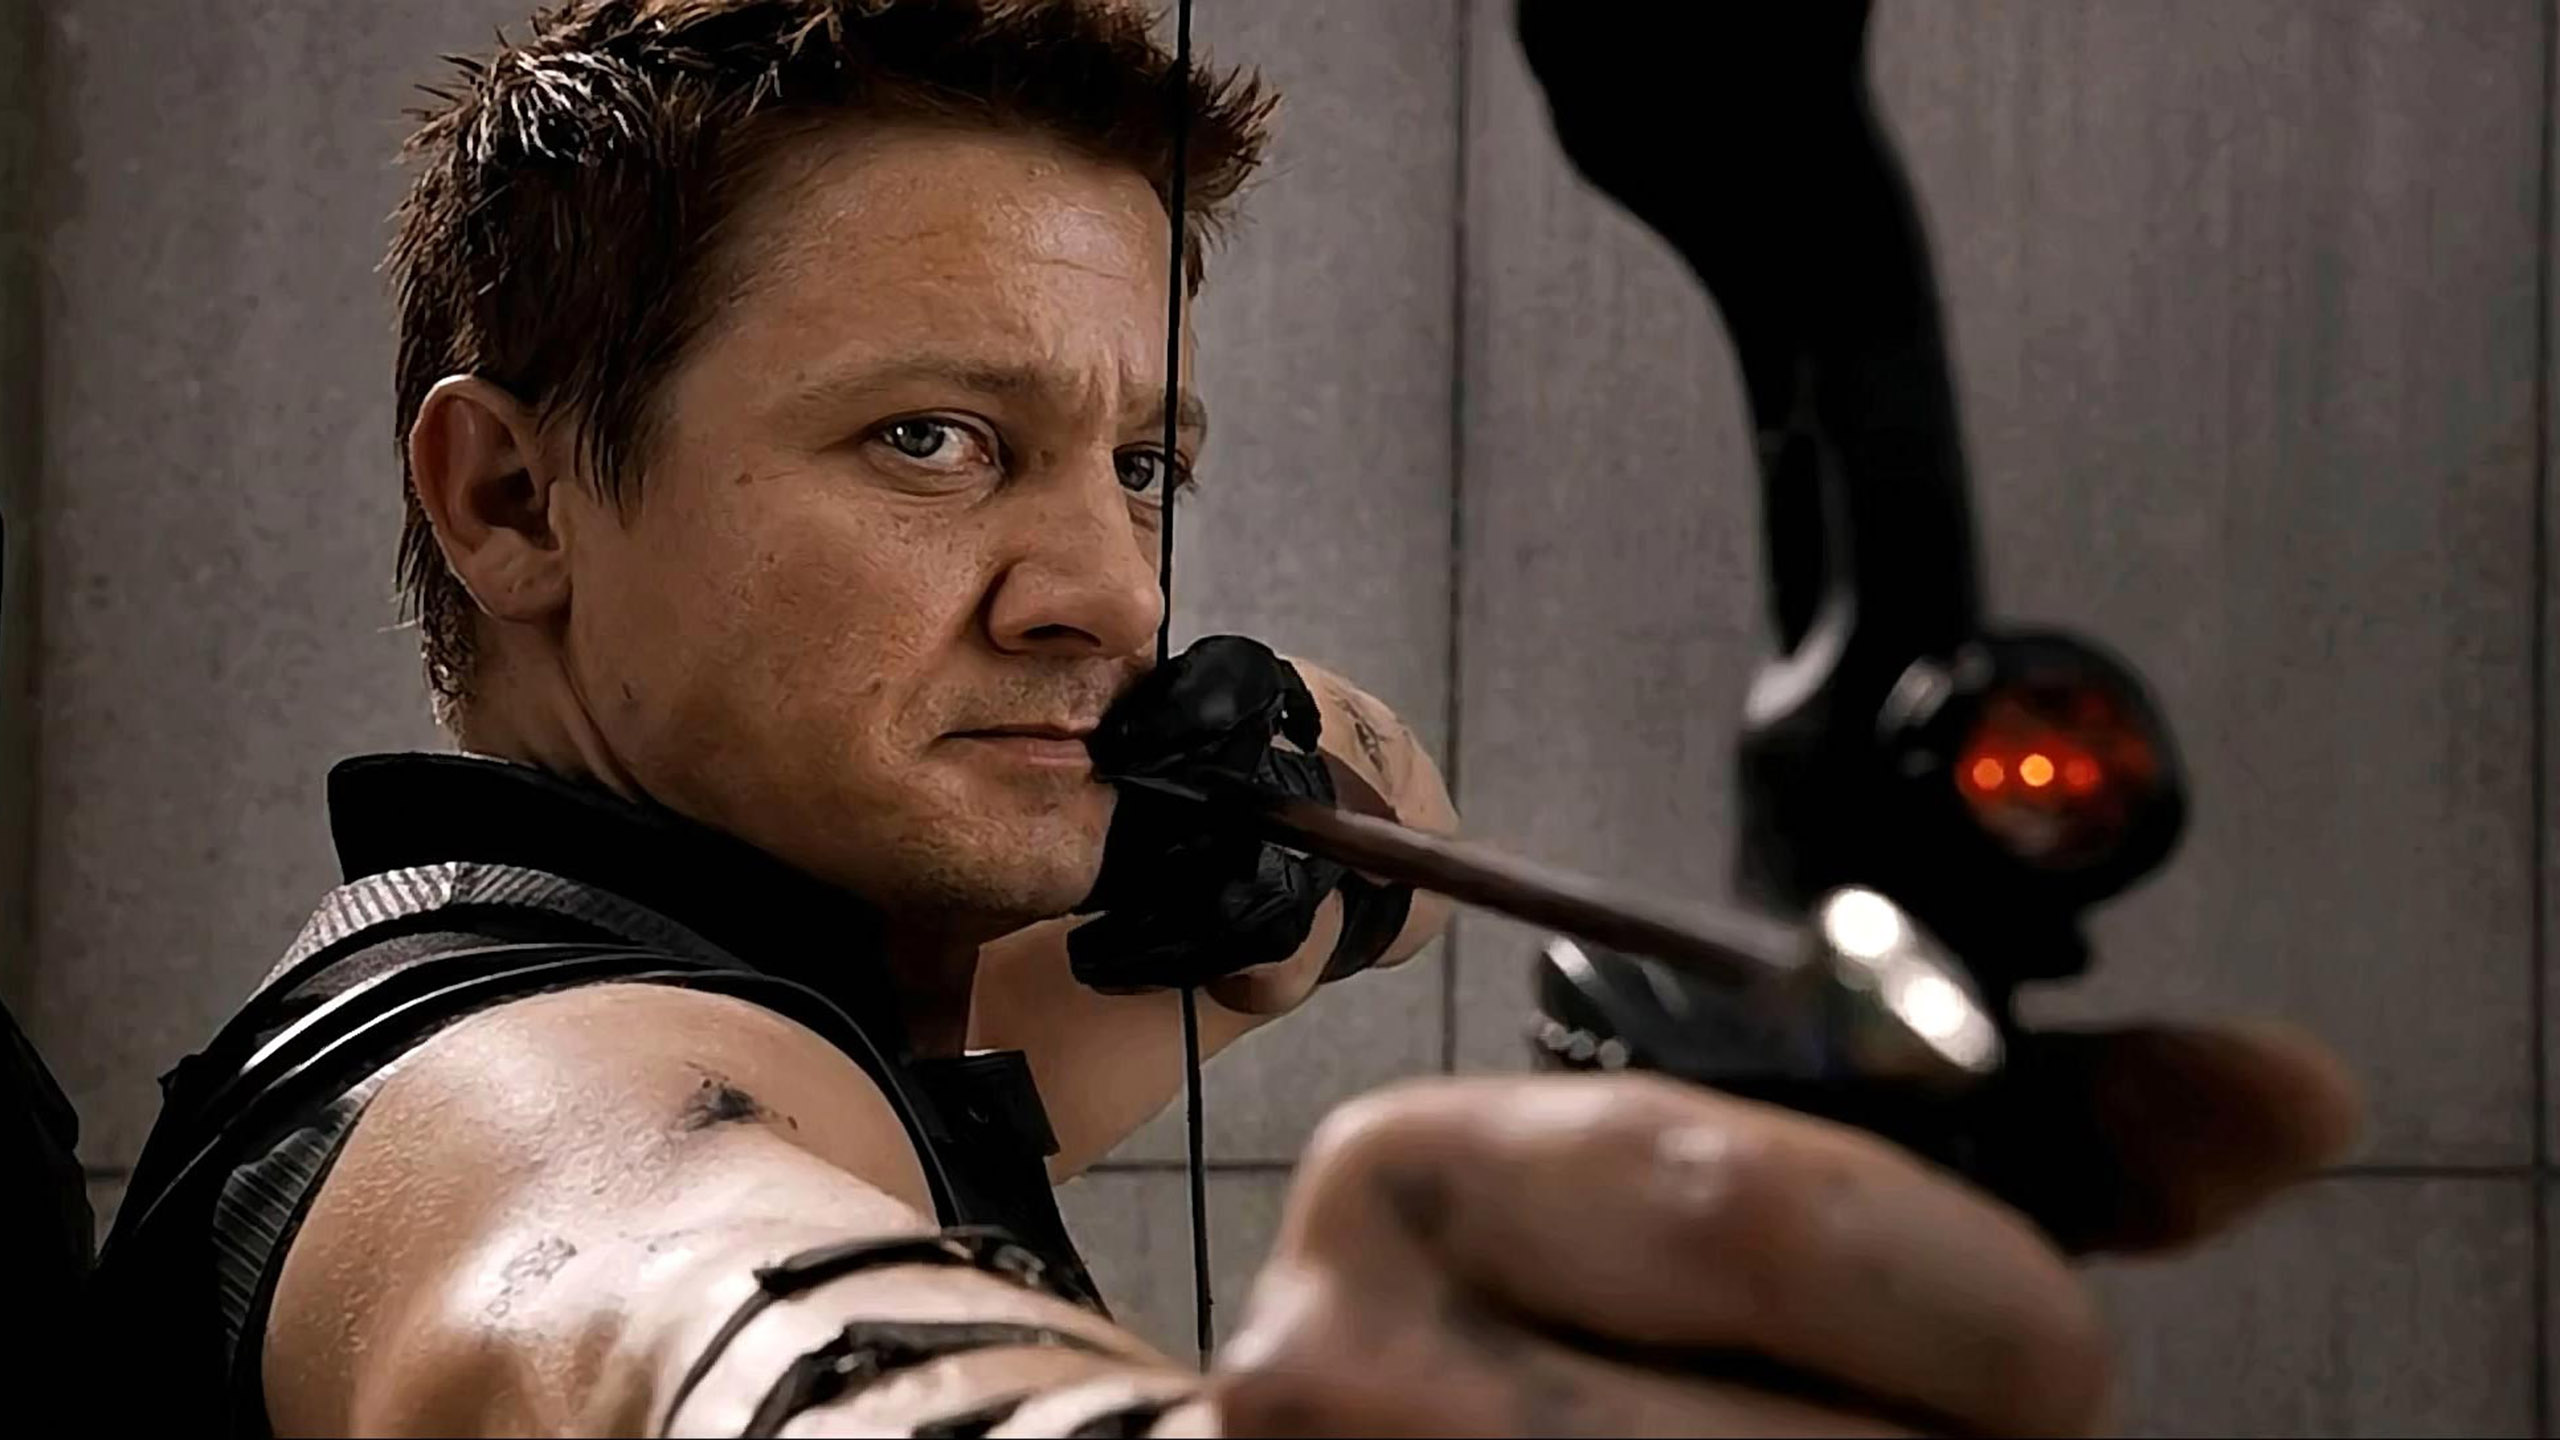 2560x1440 - Jeremy Renner Wallpapers 19